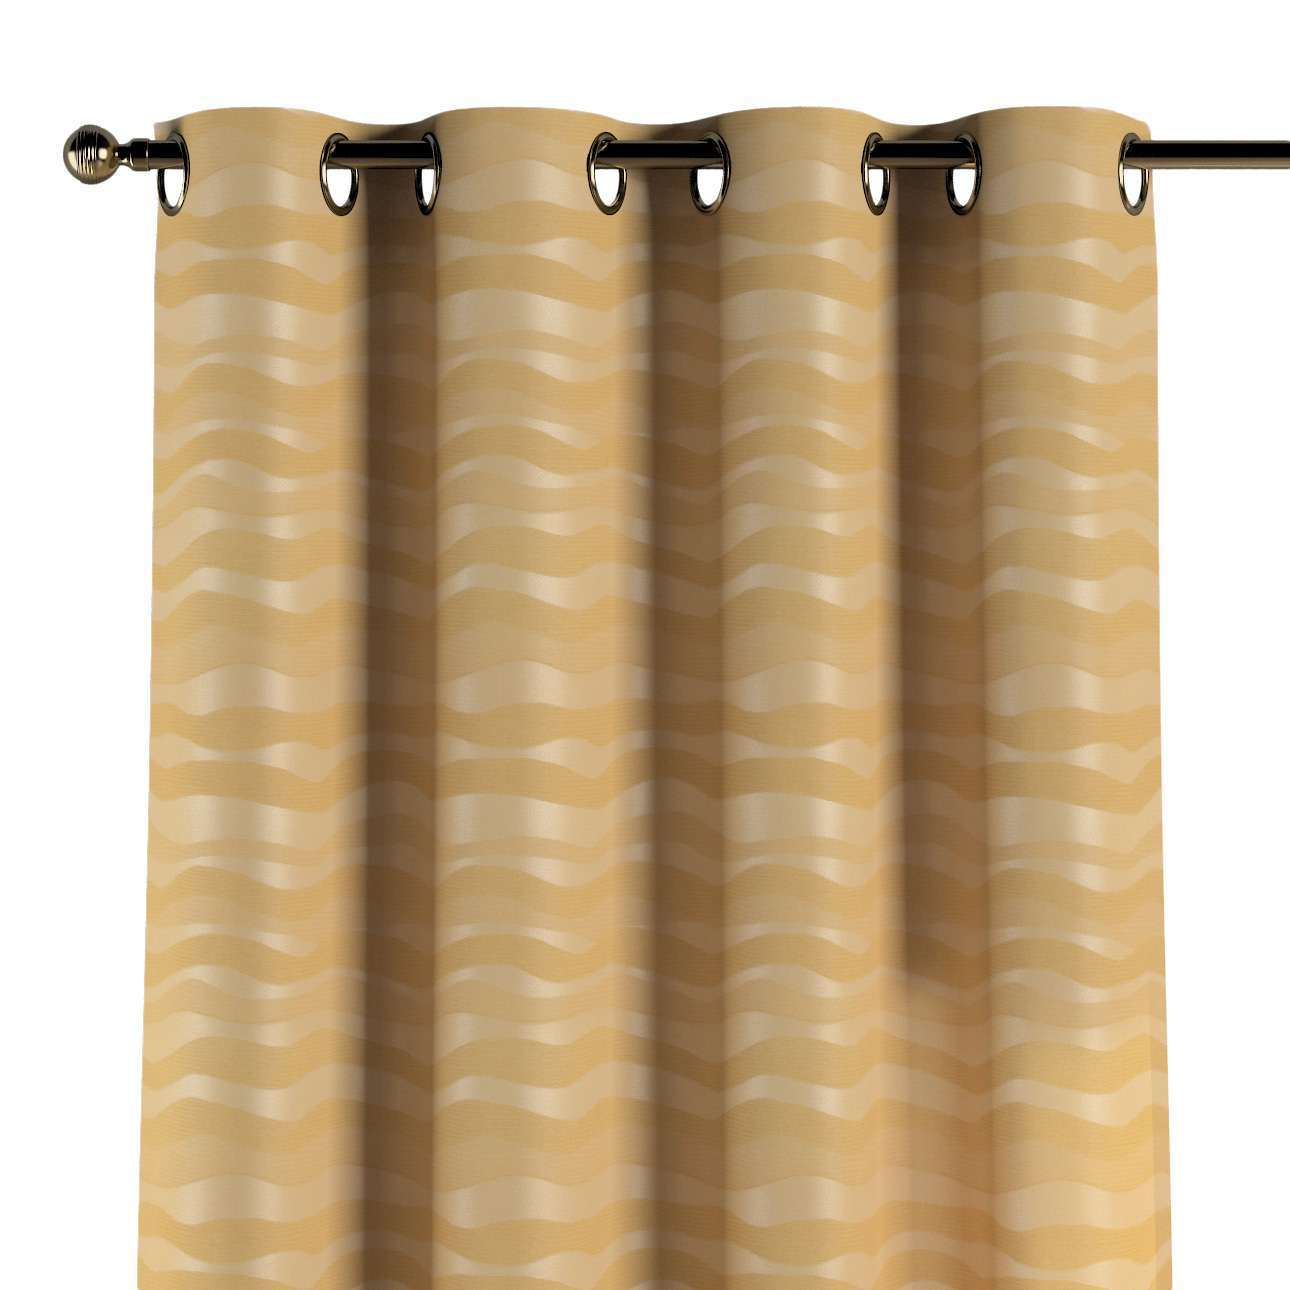 Eyelet curtains in collection Damasco, fabric: 141-74